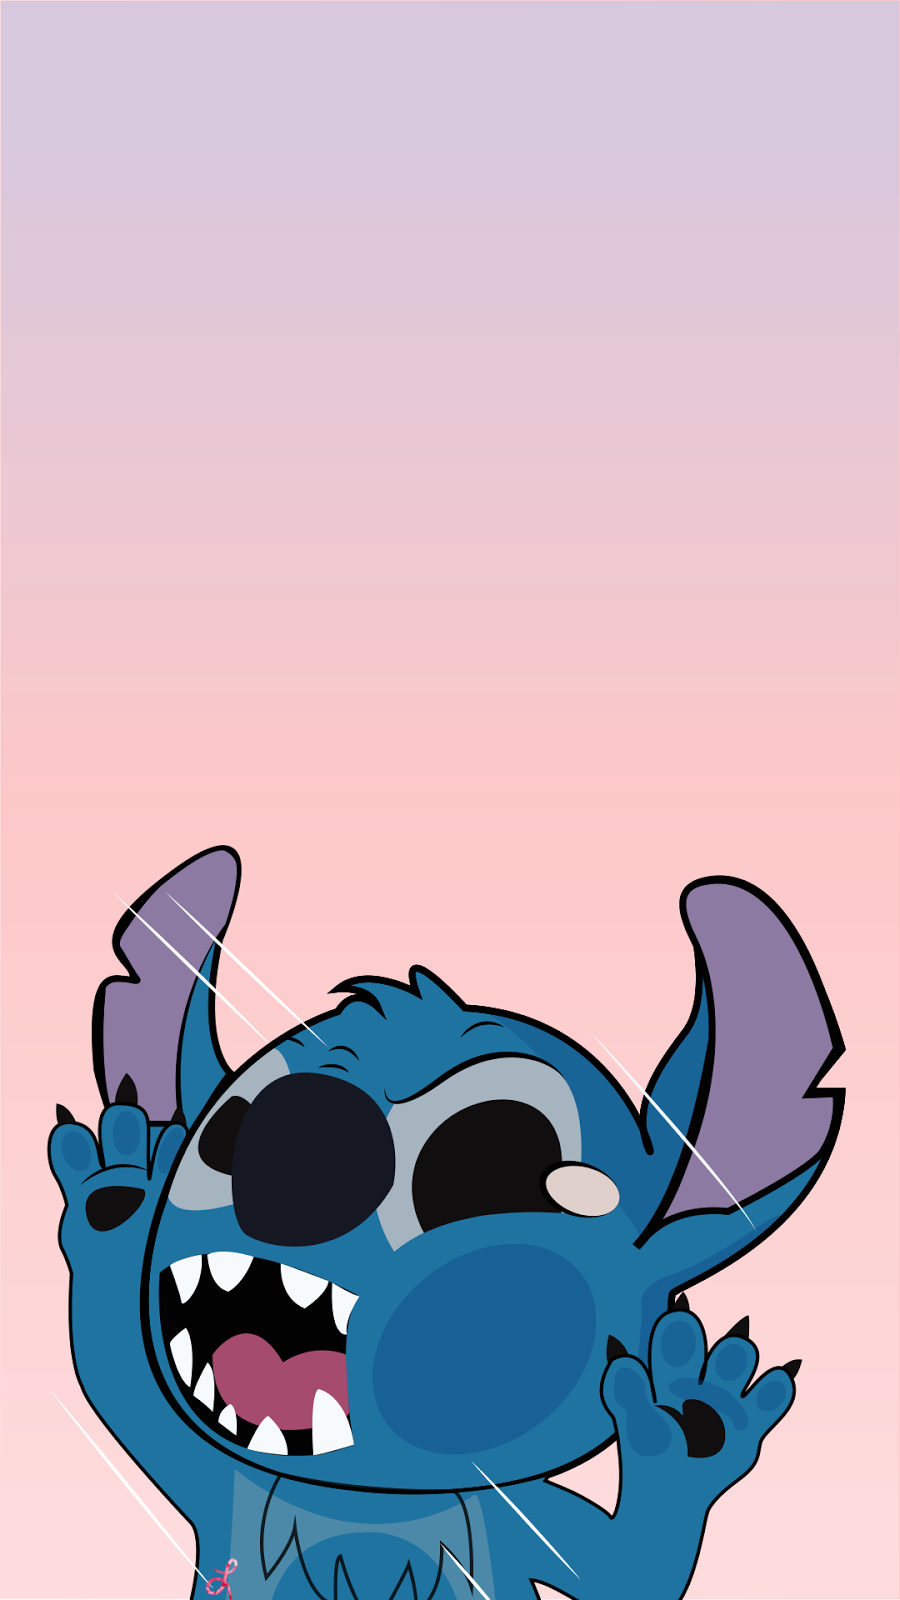 Wallpaper Iphone 6 Stitch Png 900 1 600 Pixels Cute Wallpapers